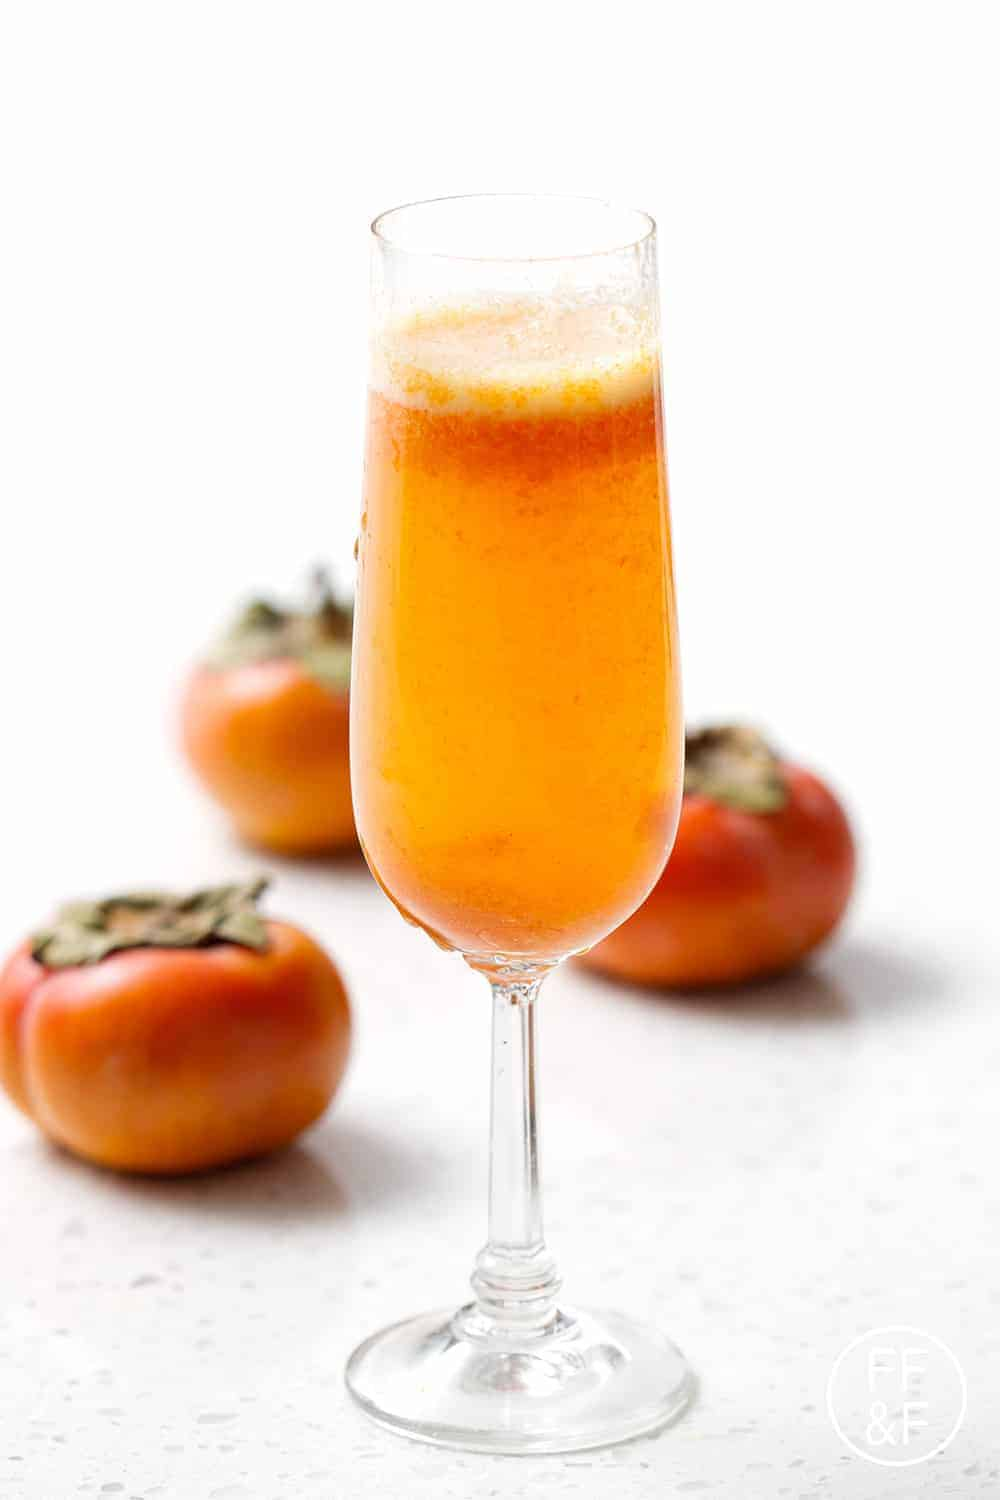 Spiced Persimmon Sparkler is a cinnamony champagne cocktail with a fruity persimmon puree.